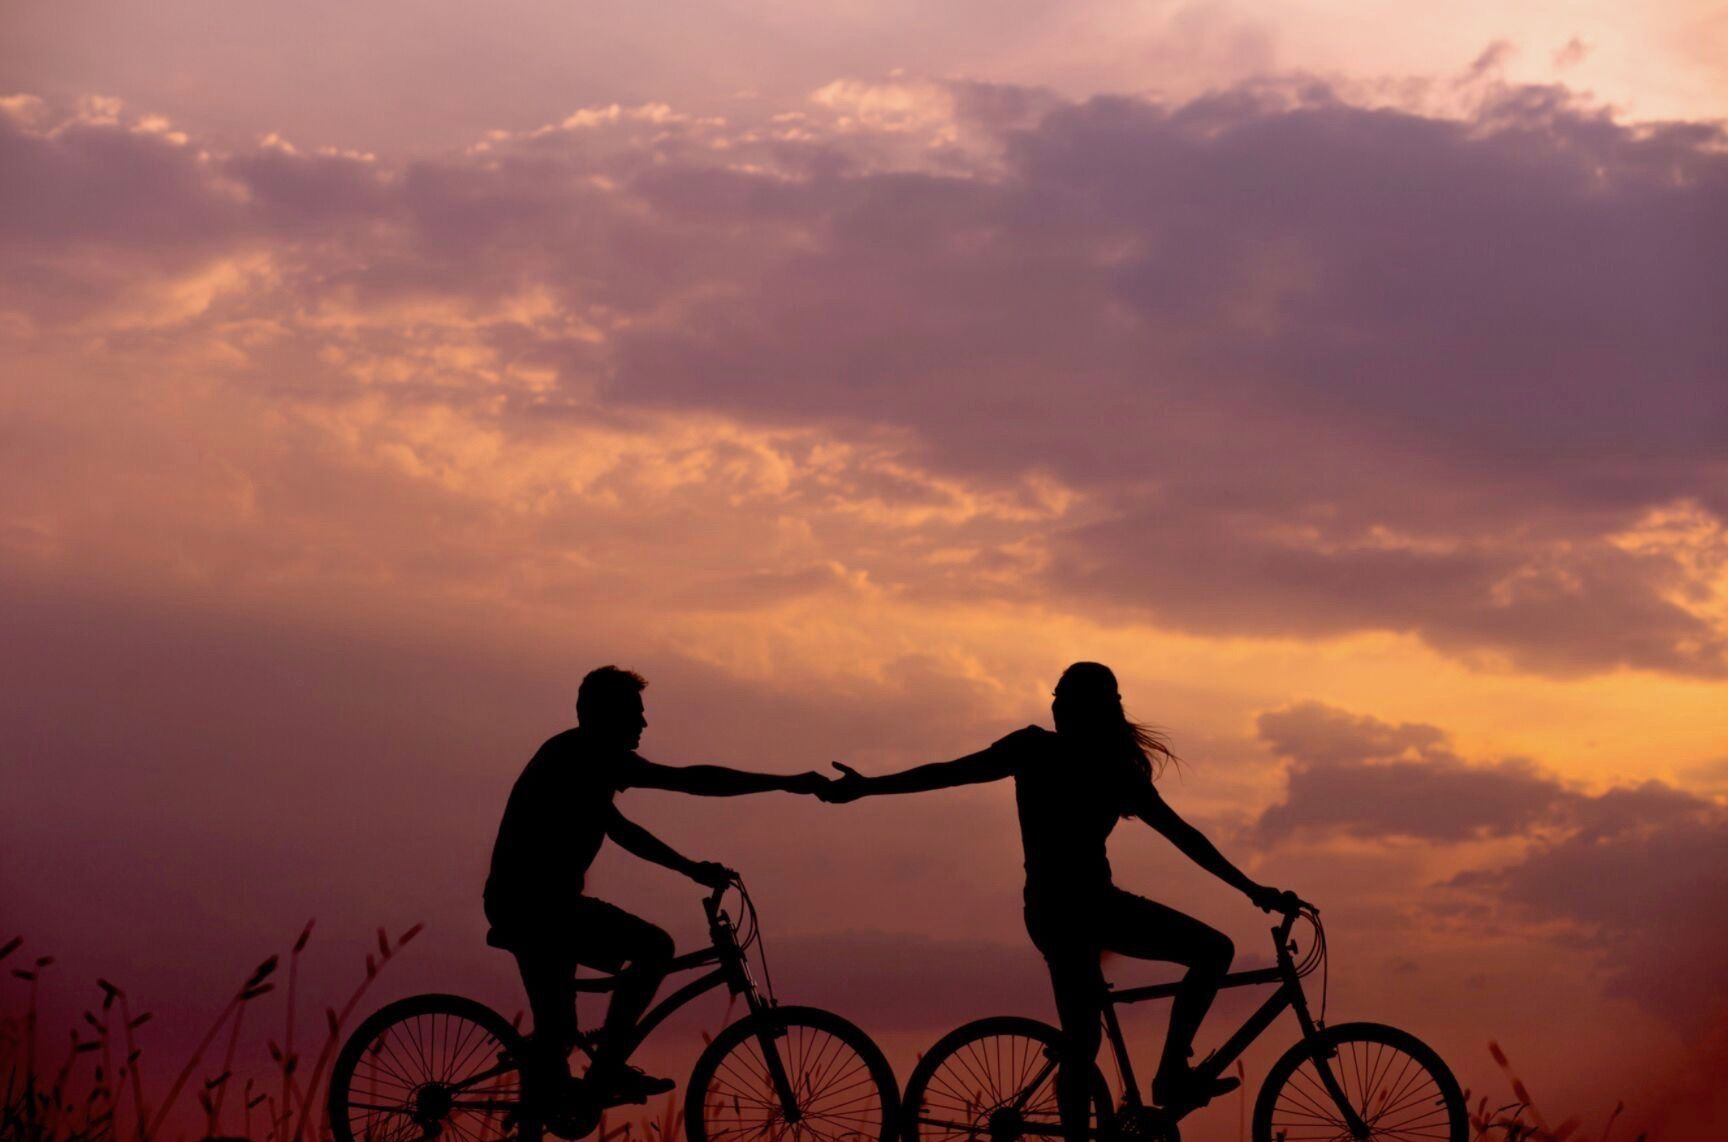 A couple rides bikes and holds hands against a beautiful orange sunset.